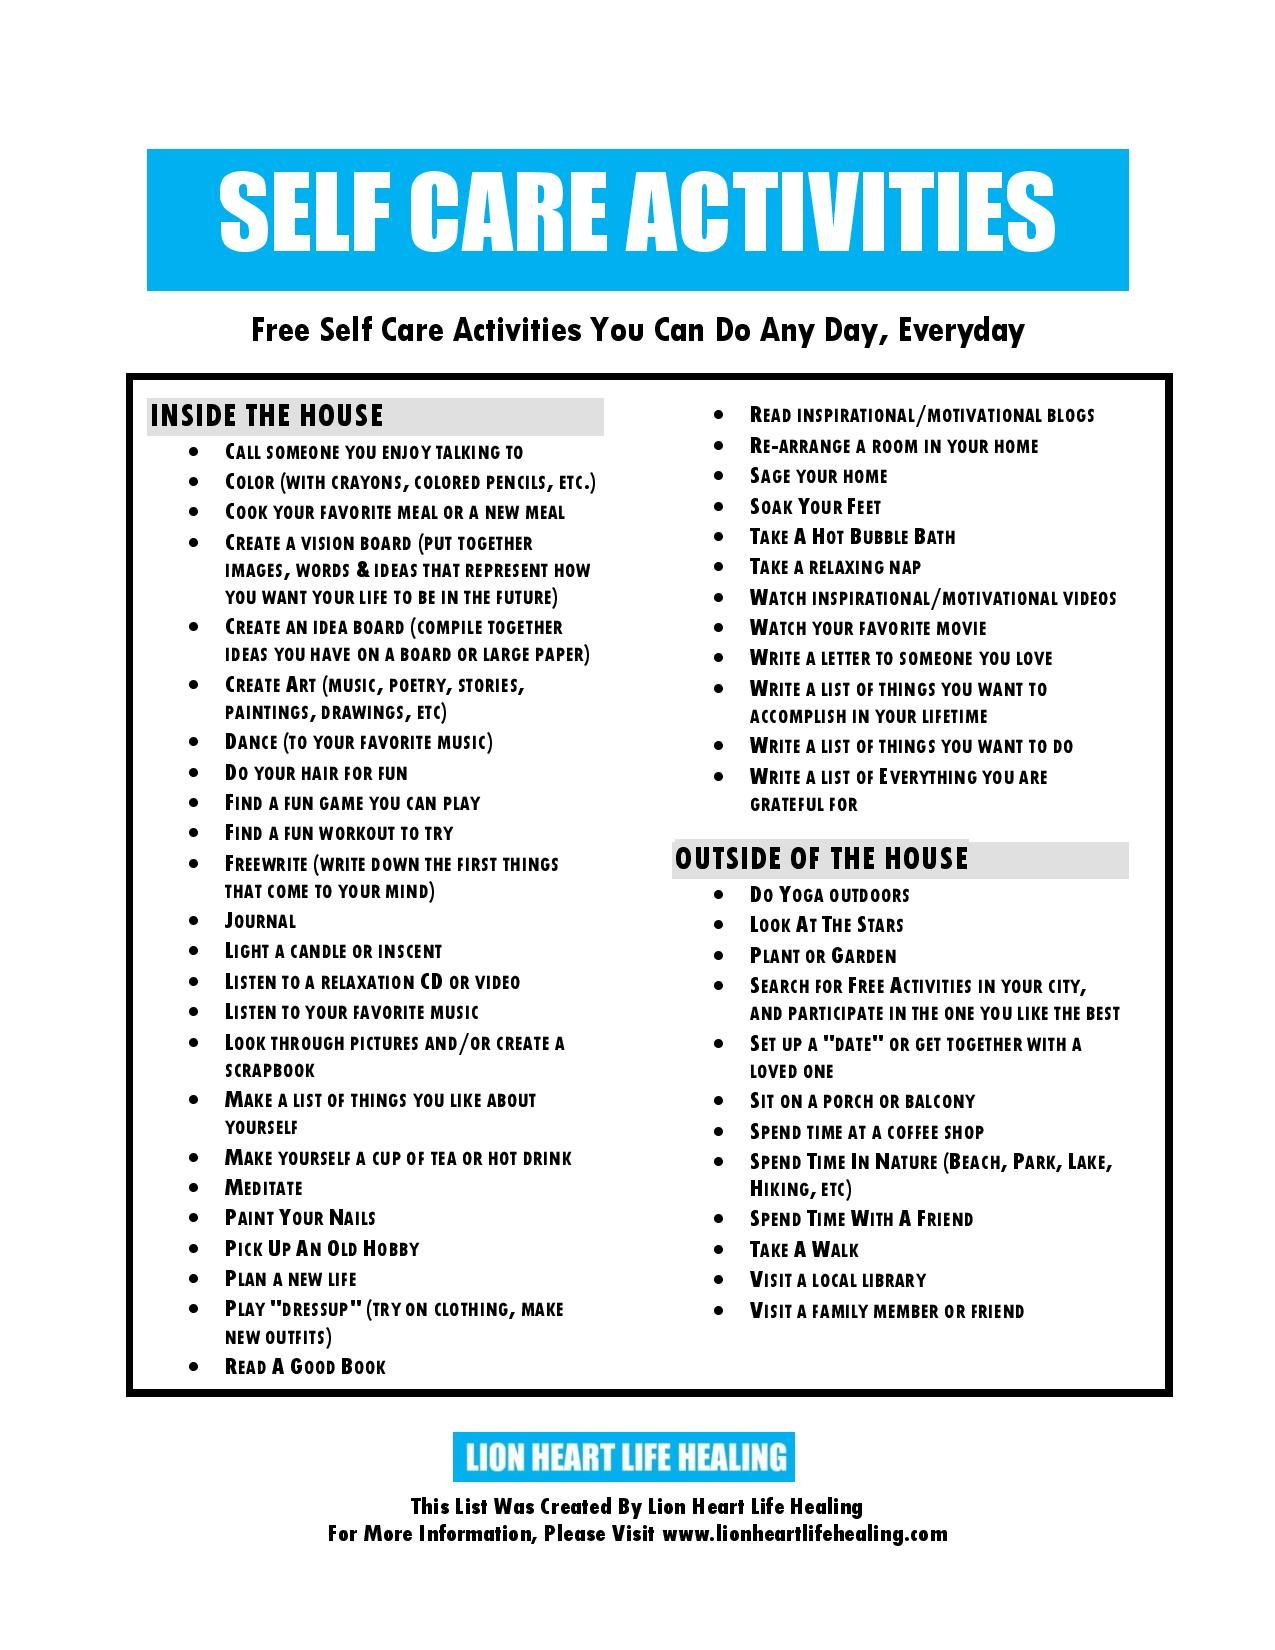 Self Care Activities Lhlh Image